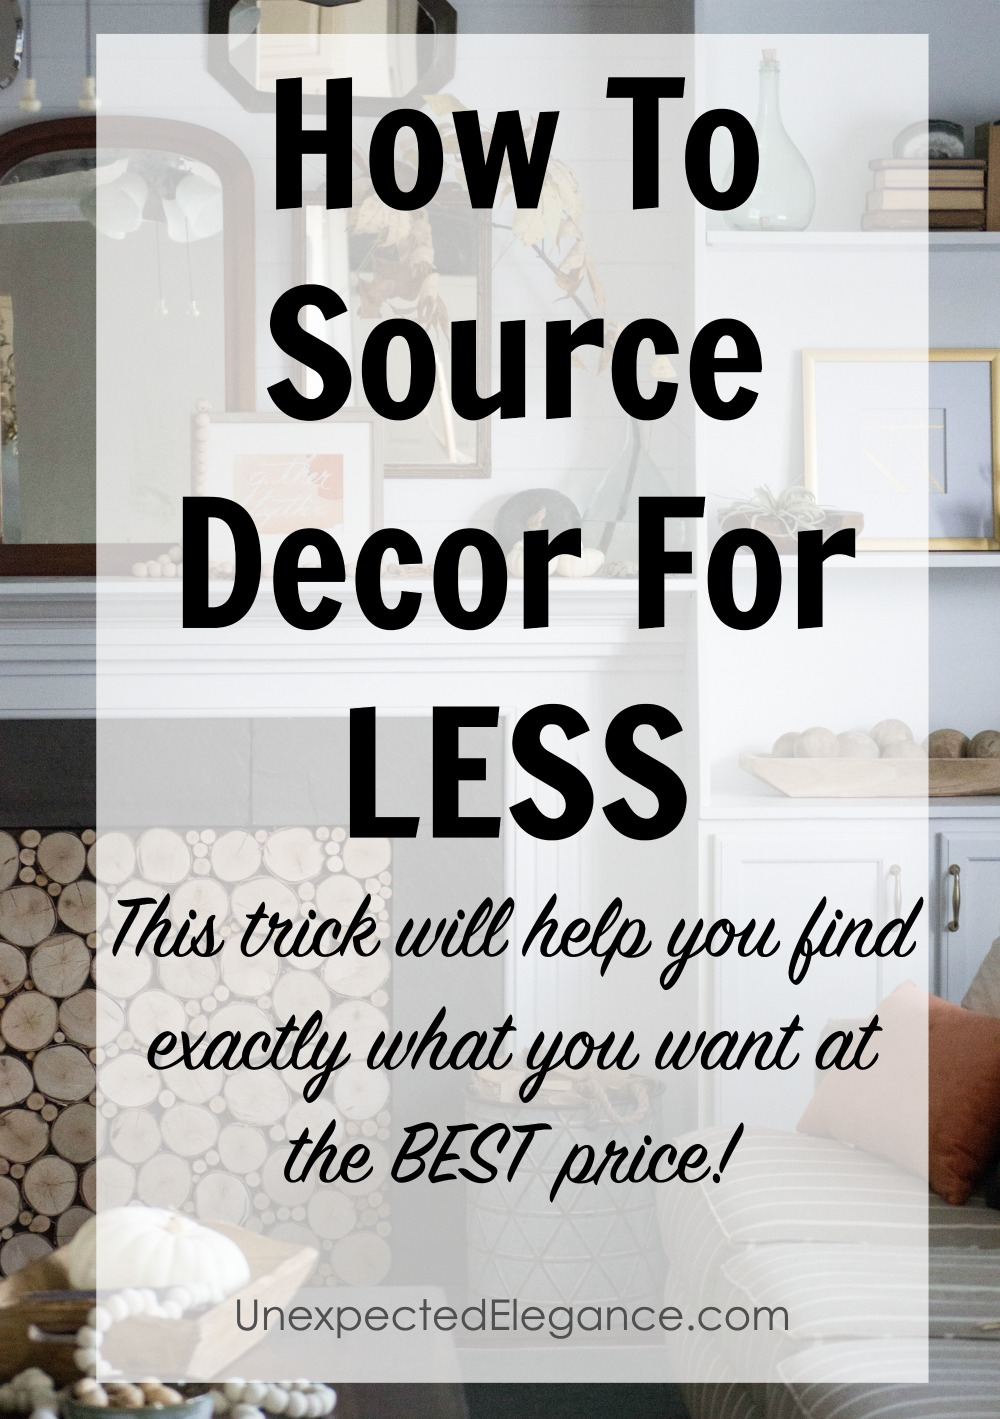 Have you ever seen a photo of a room and wanted to purchase something, but weren't sure where to buy it? Find out this AMAZING tip to get that PERFECT piece at the very best price!!